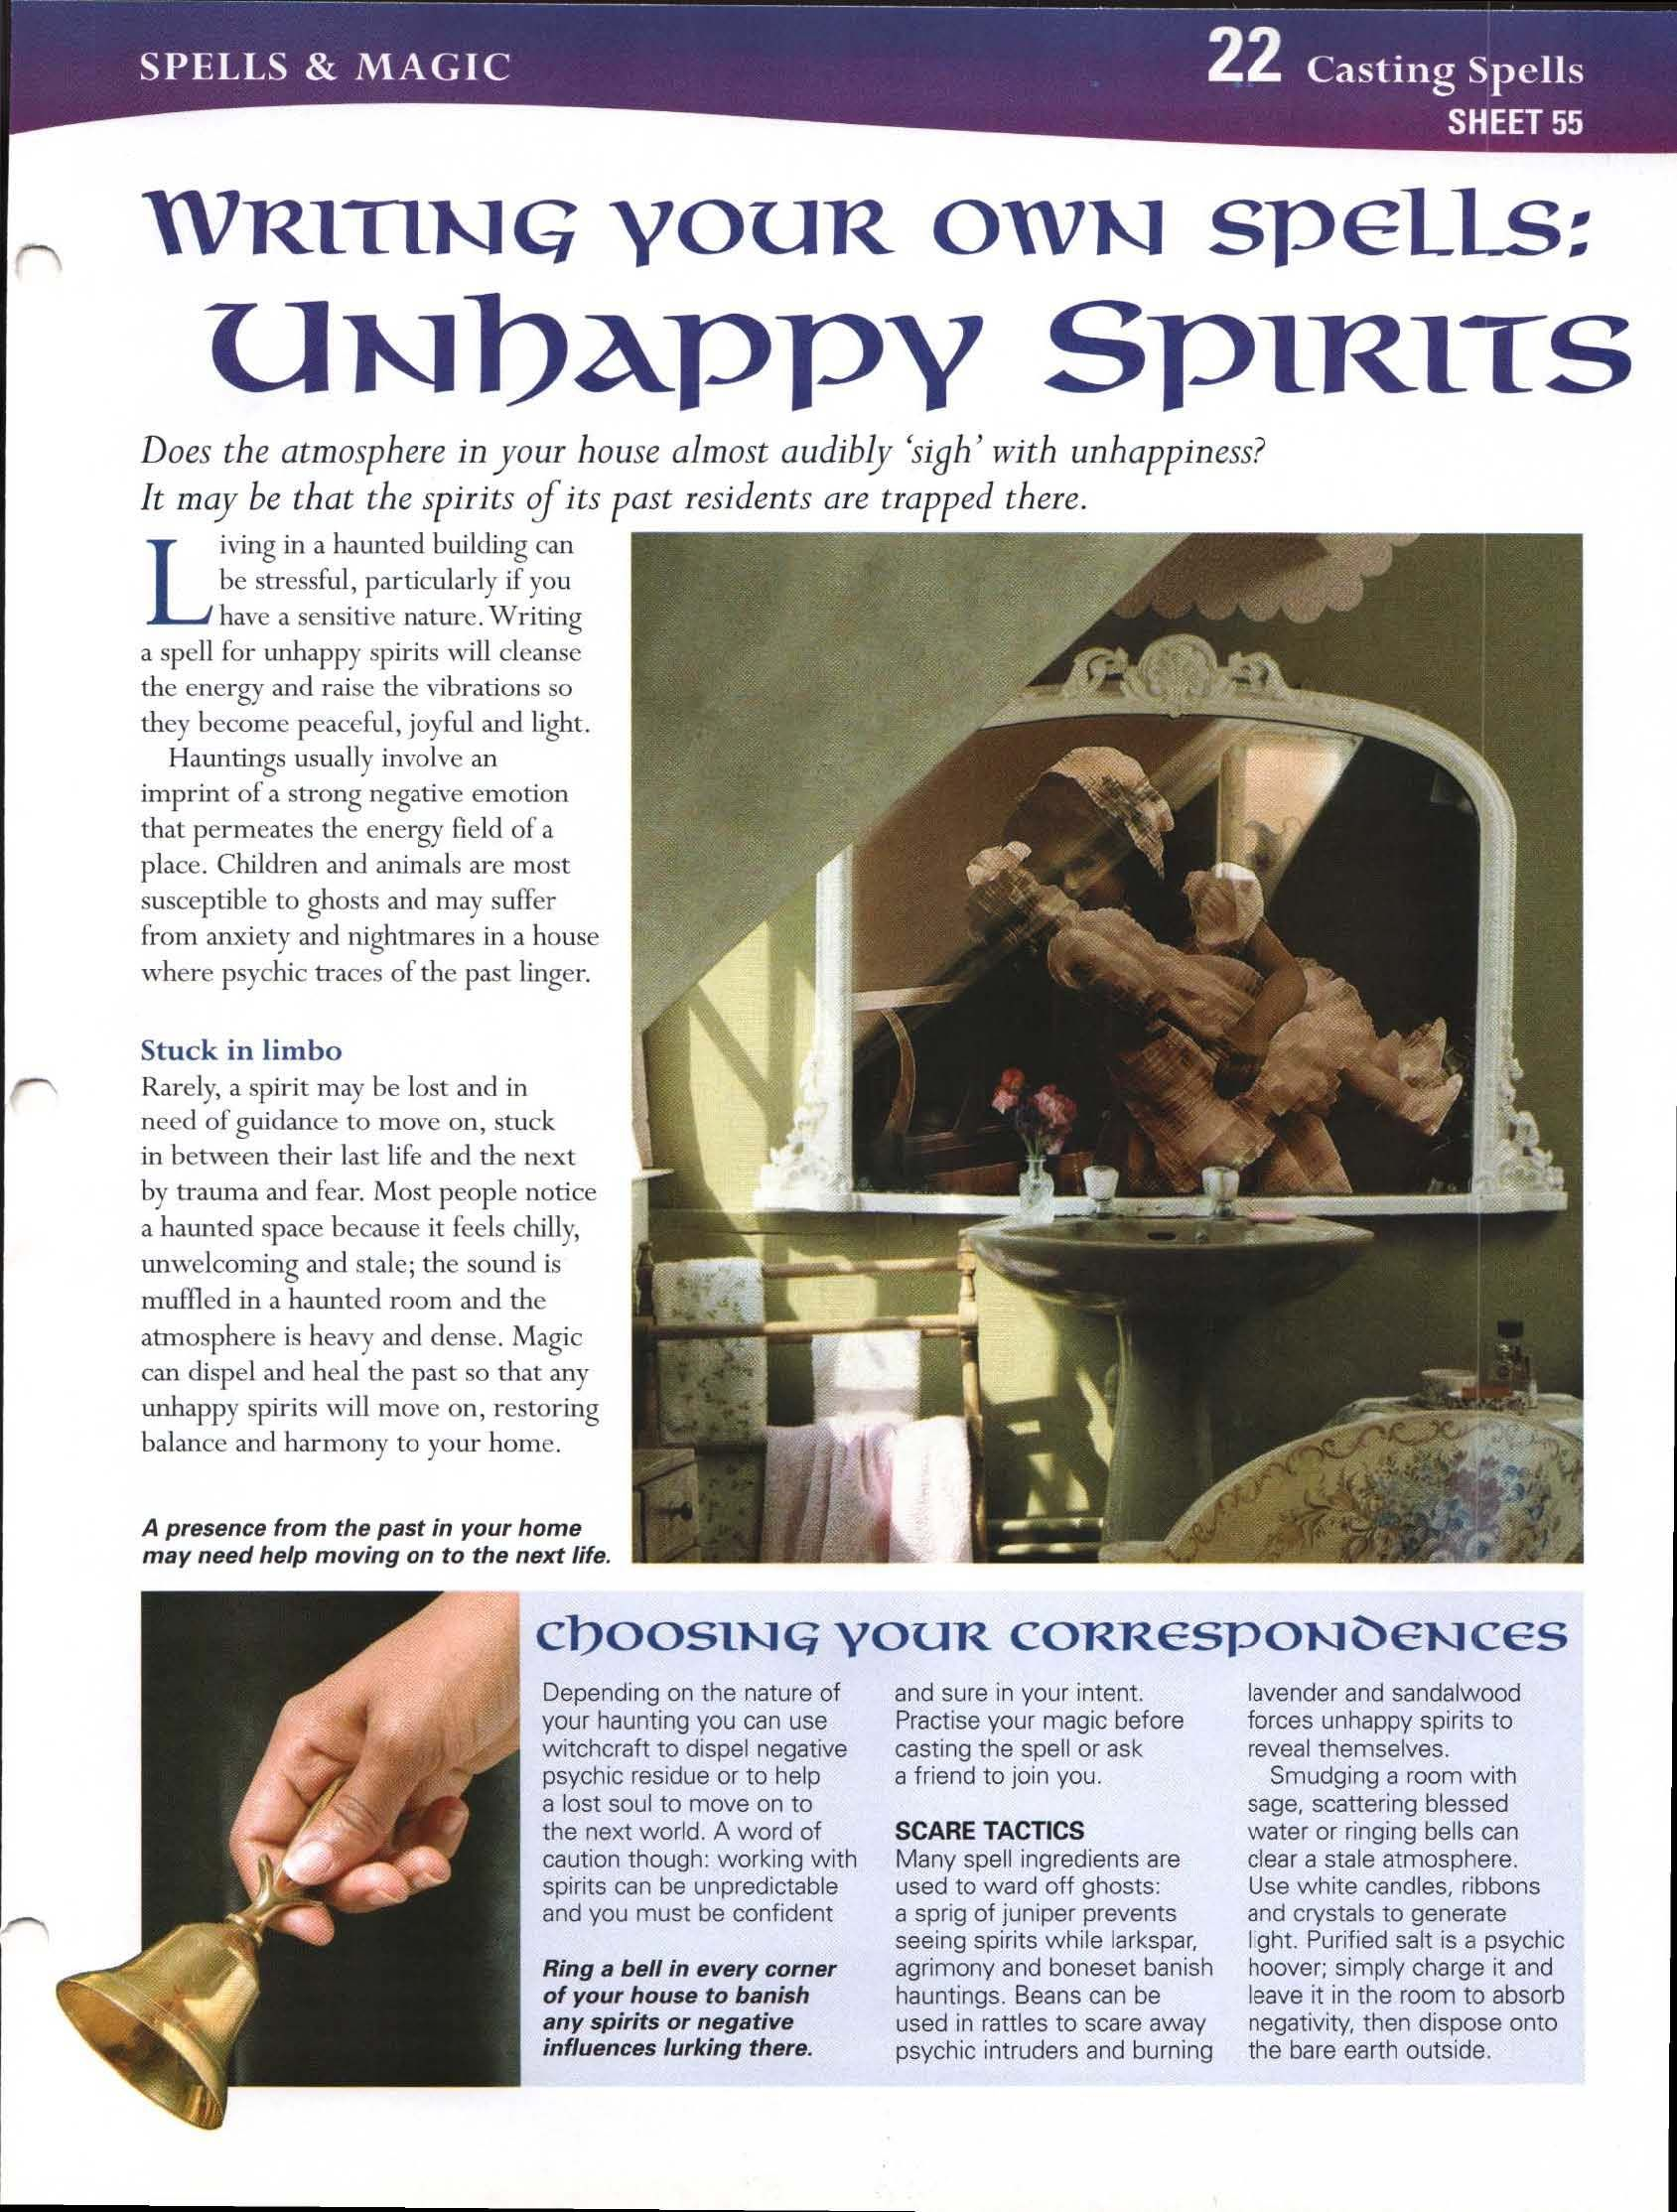 Writing Your Own Spells: Unhappy Spirits